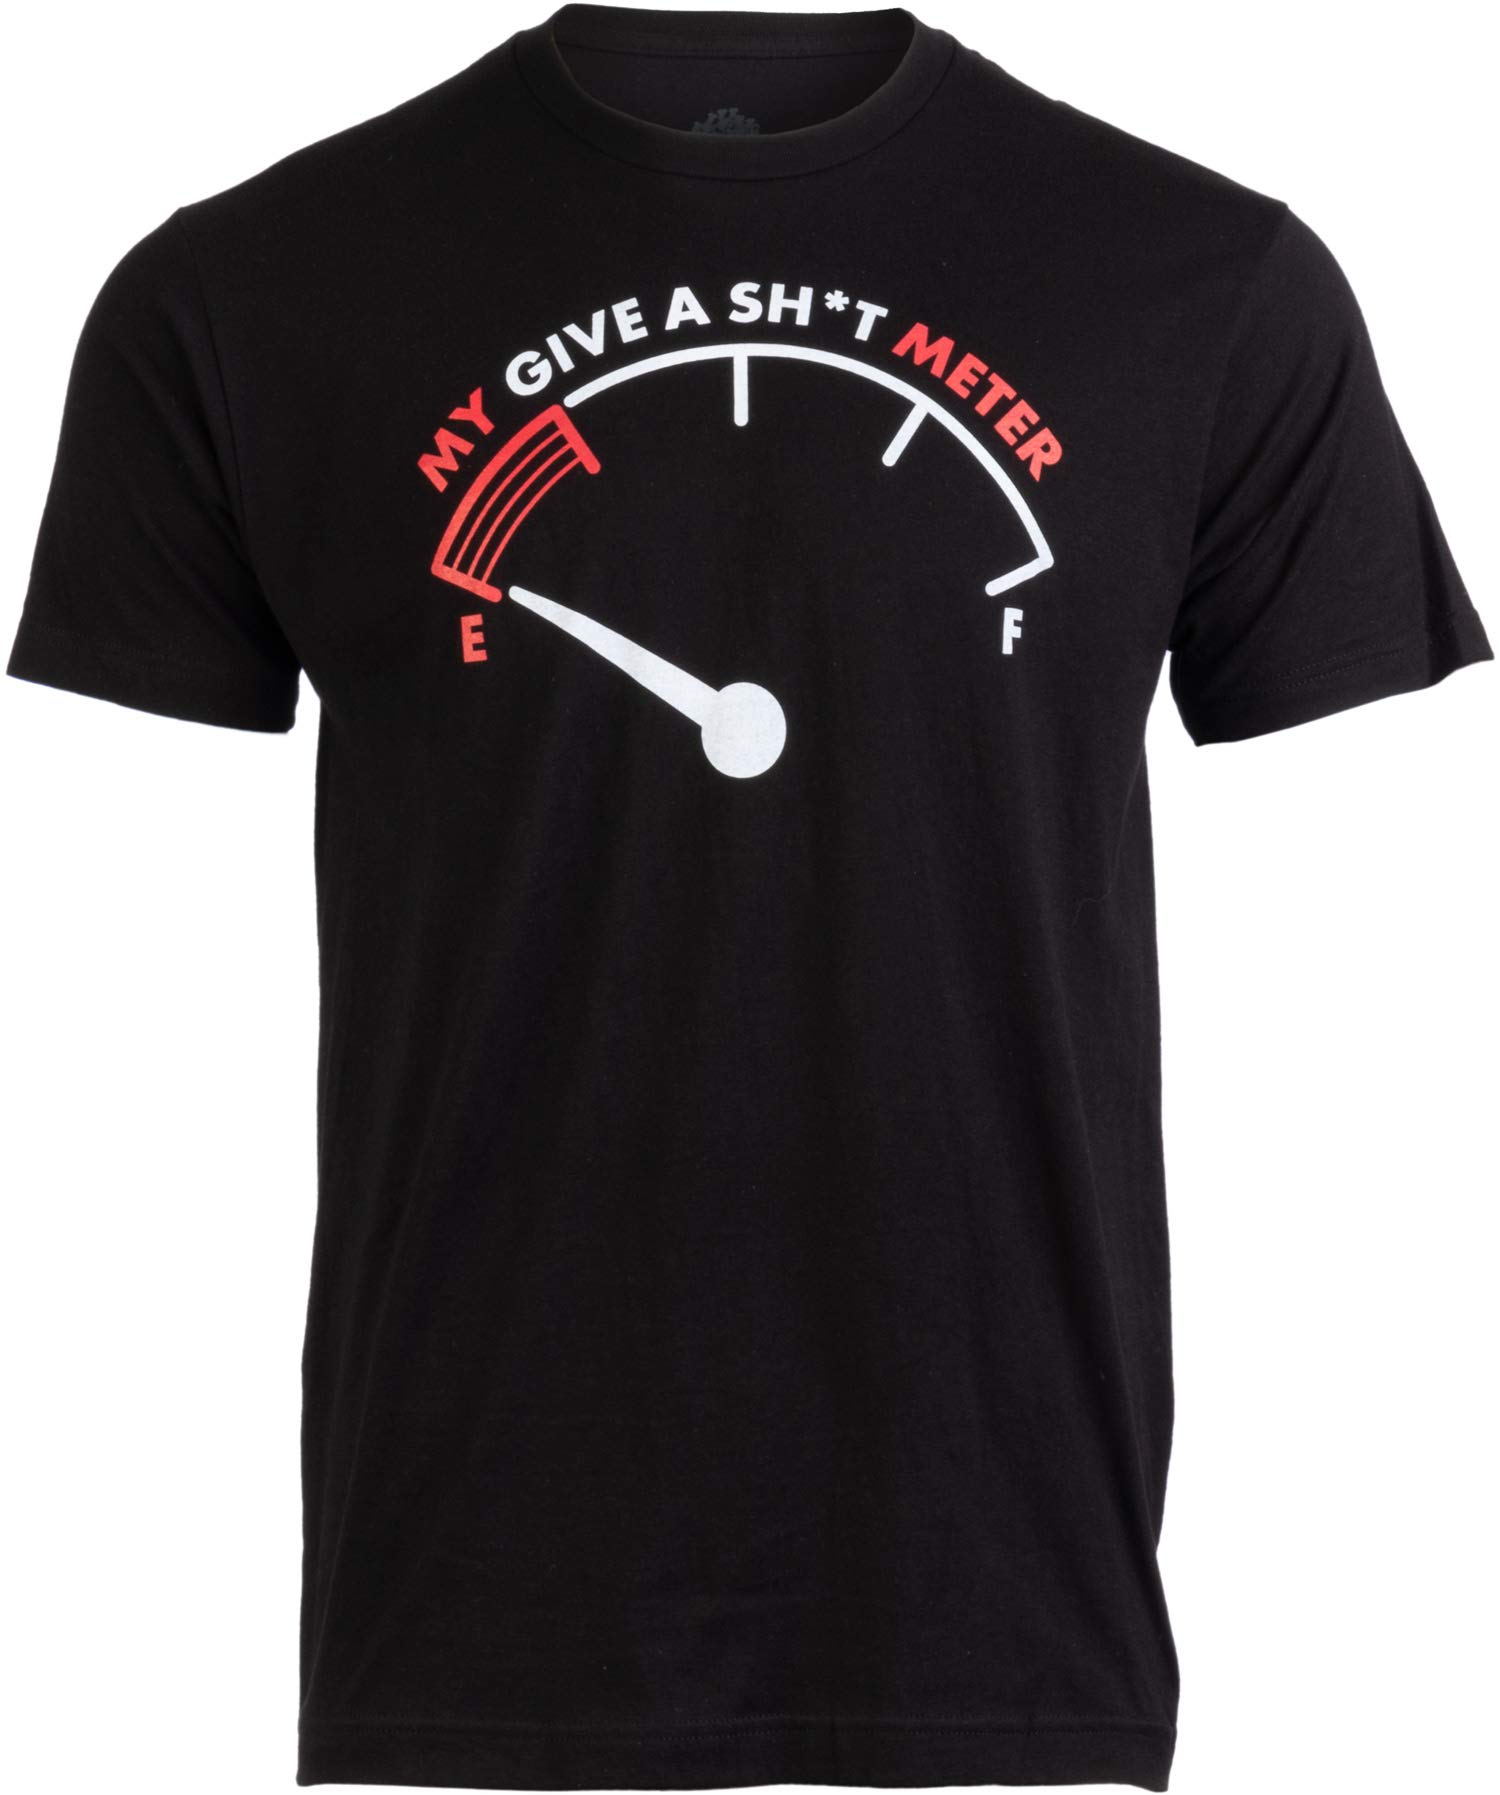 My Give A Sht Meter Is Empty Funny Sarcastic Saying Comt Joke T Shirt 1260